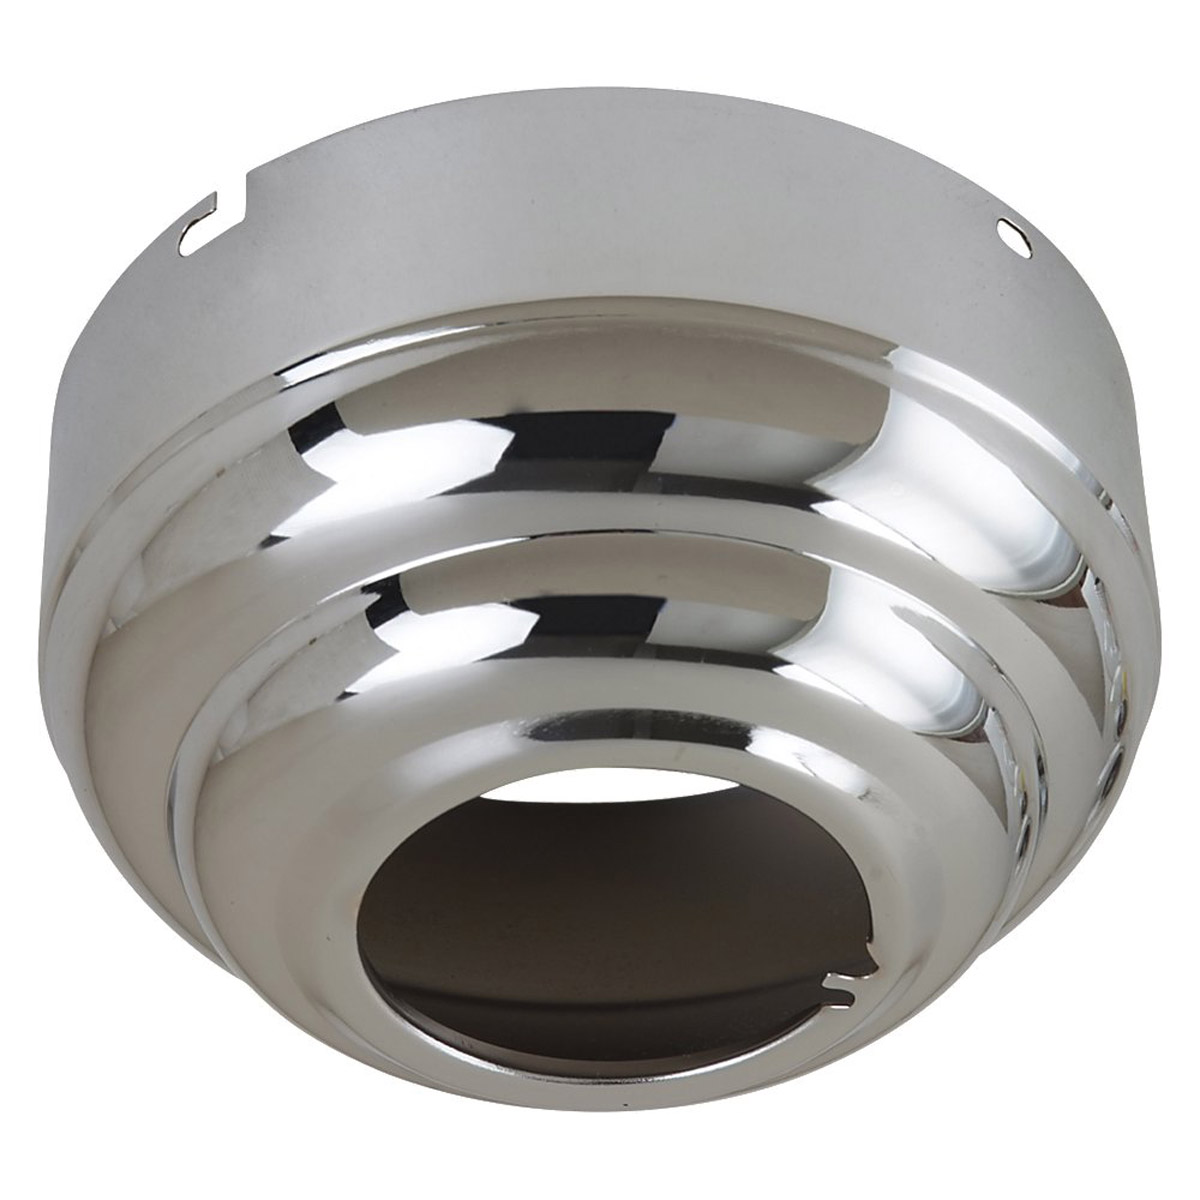 Sea Gull 1630-05 Signature Chrome Sloped Ceiling Adapter photo